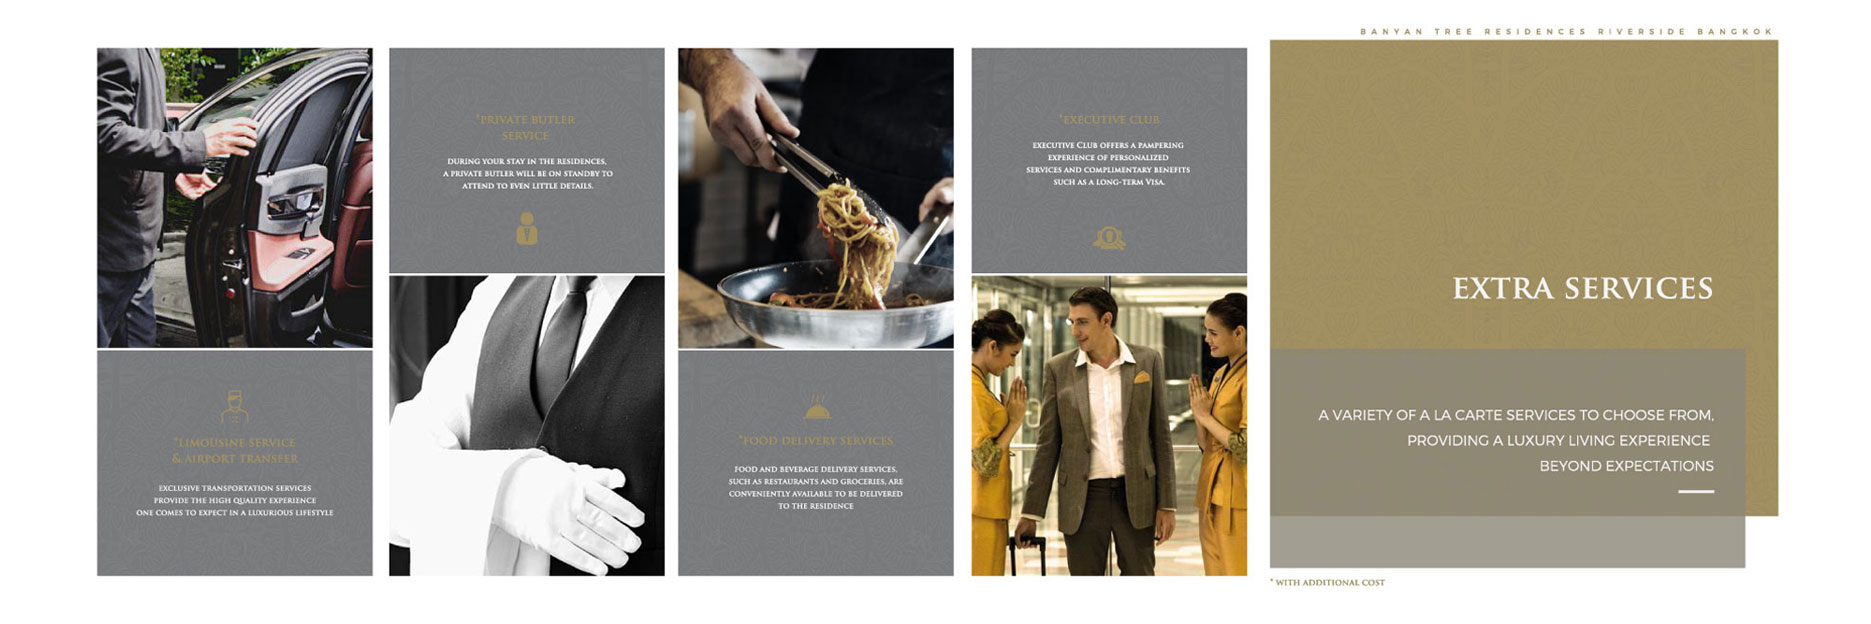 Banyan Tree Residences Riverside Bangkok Brochure 14